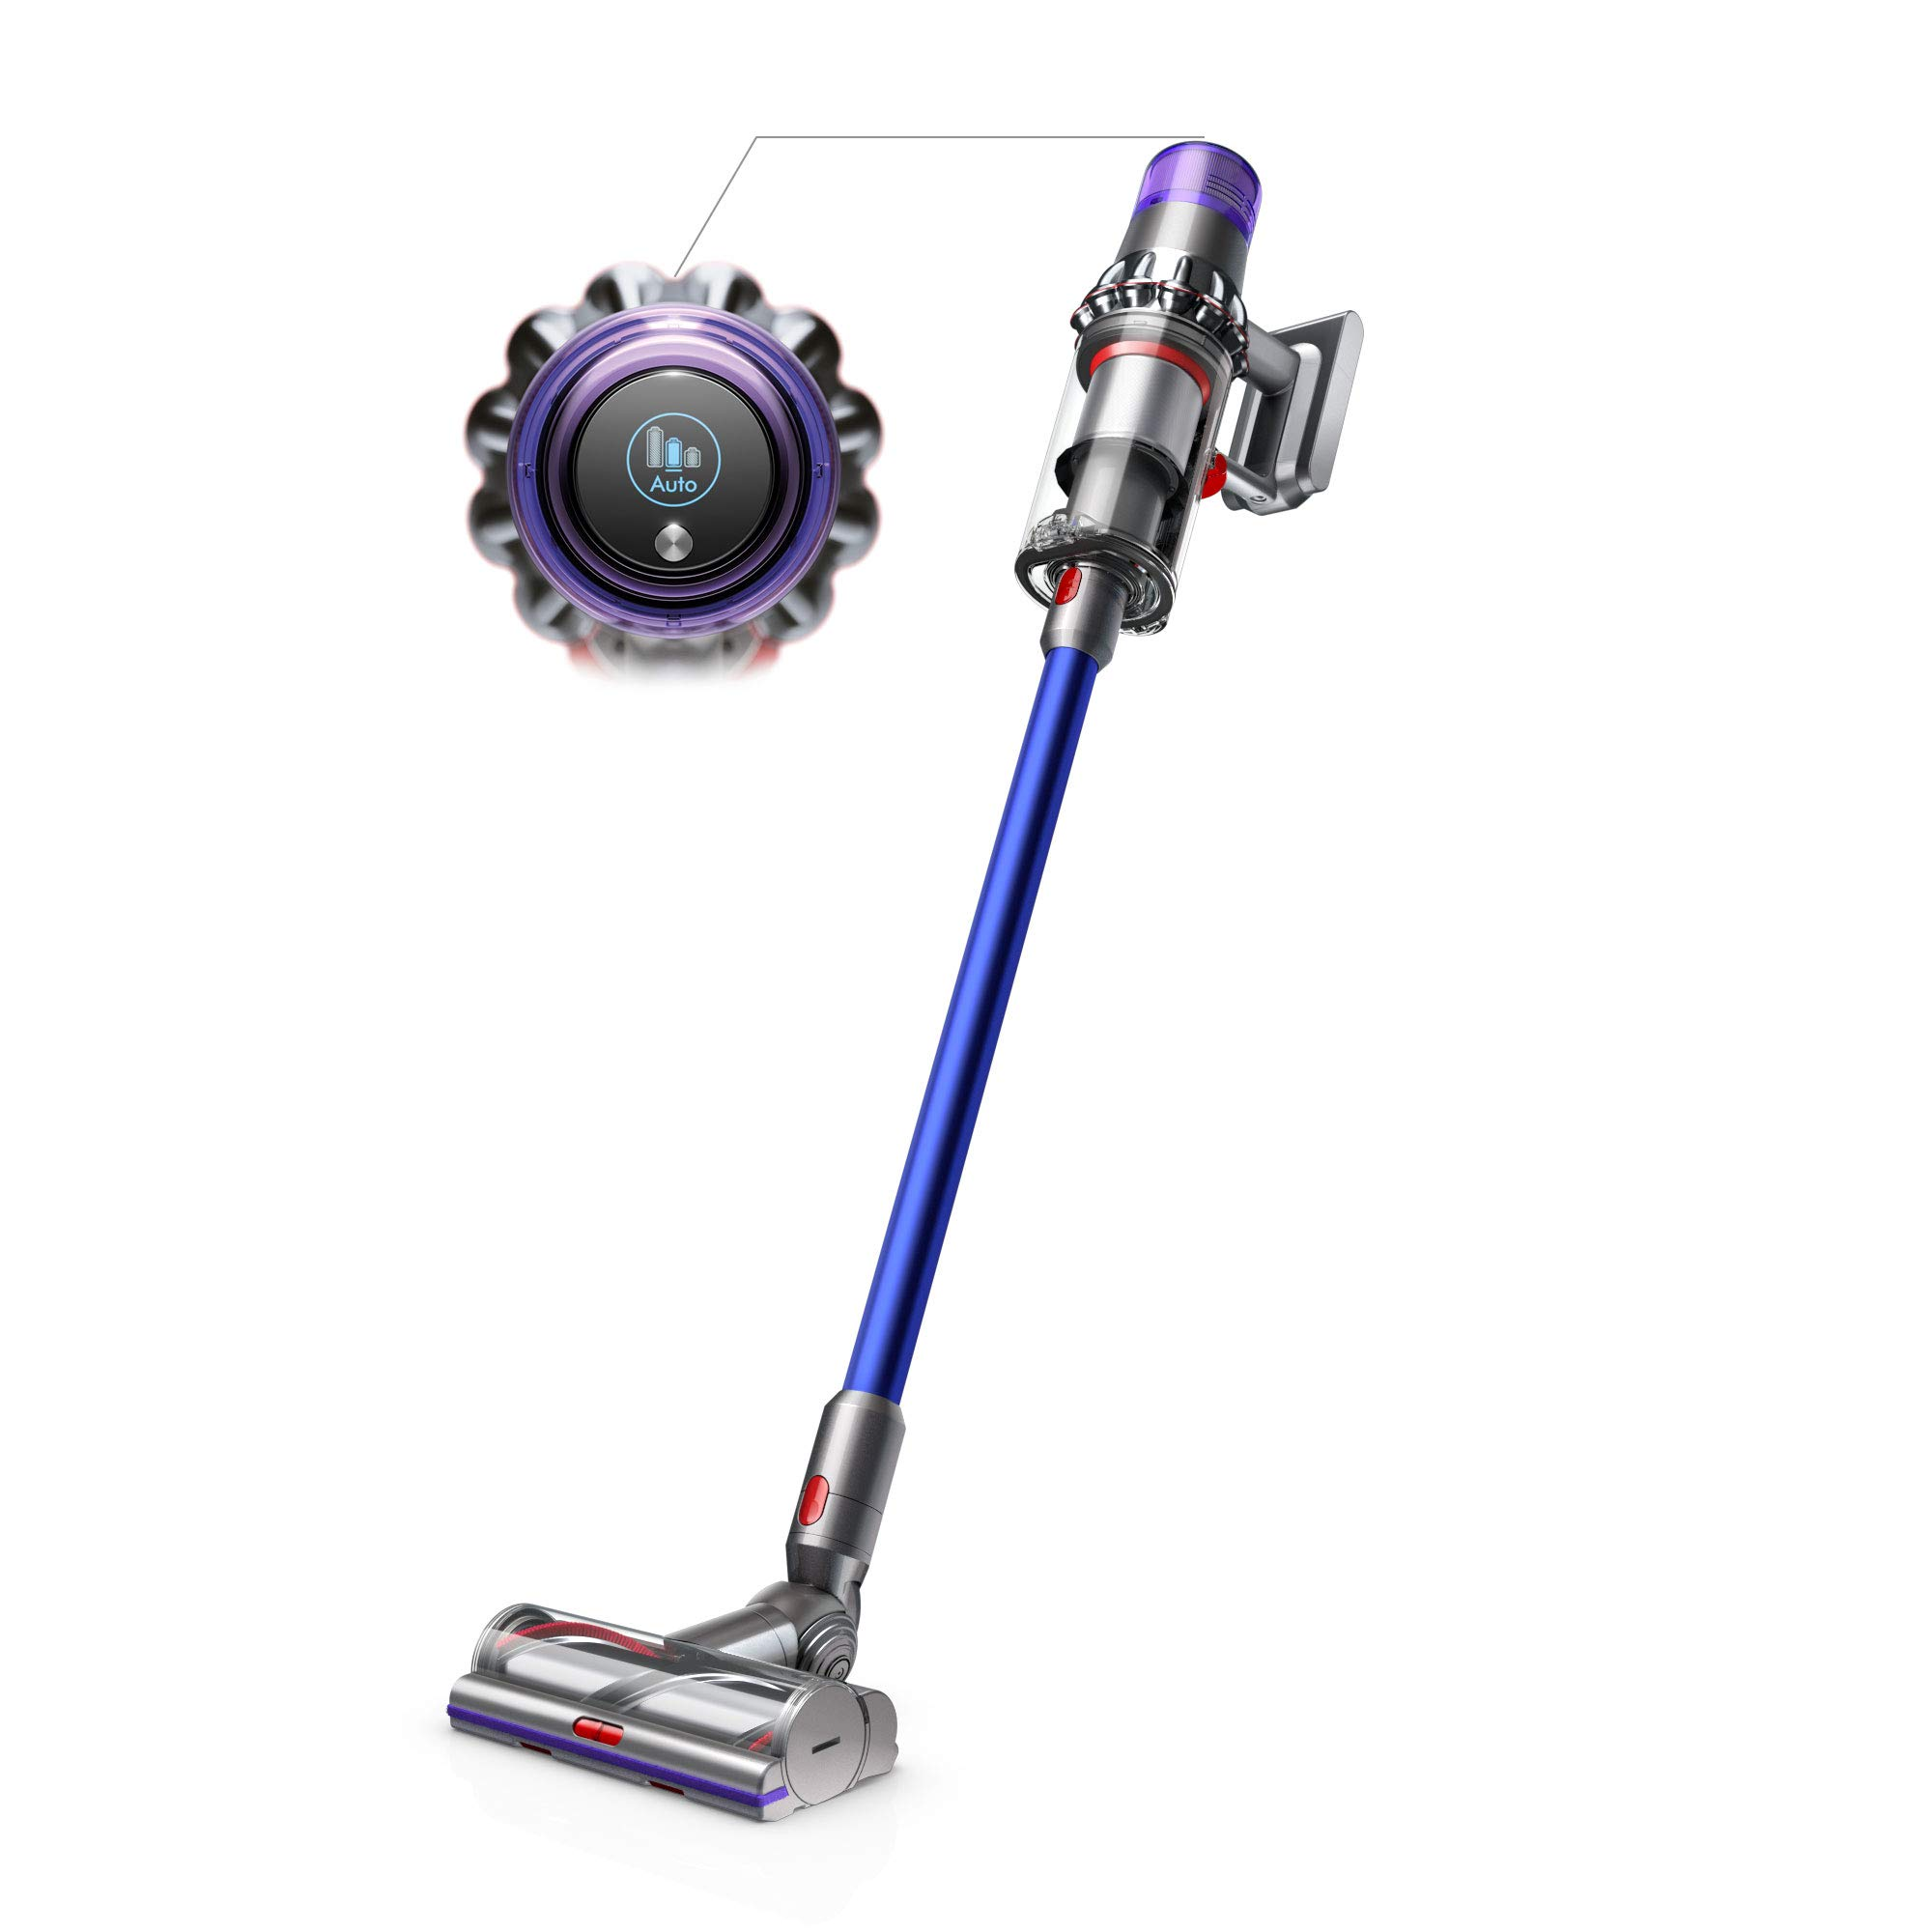 Dyson V11 Torque Drive Cordless Vacuum Cleaner, Blue by Dyson